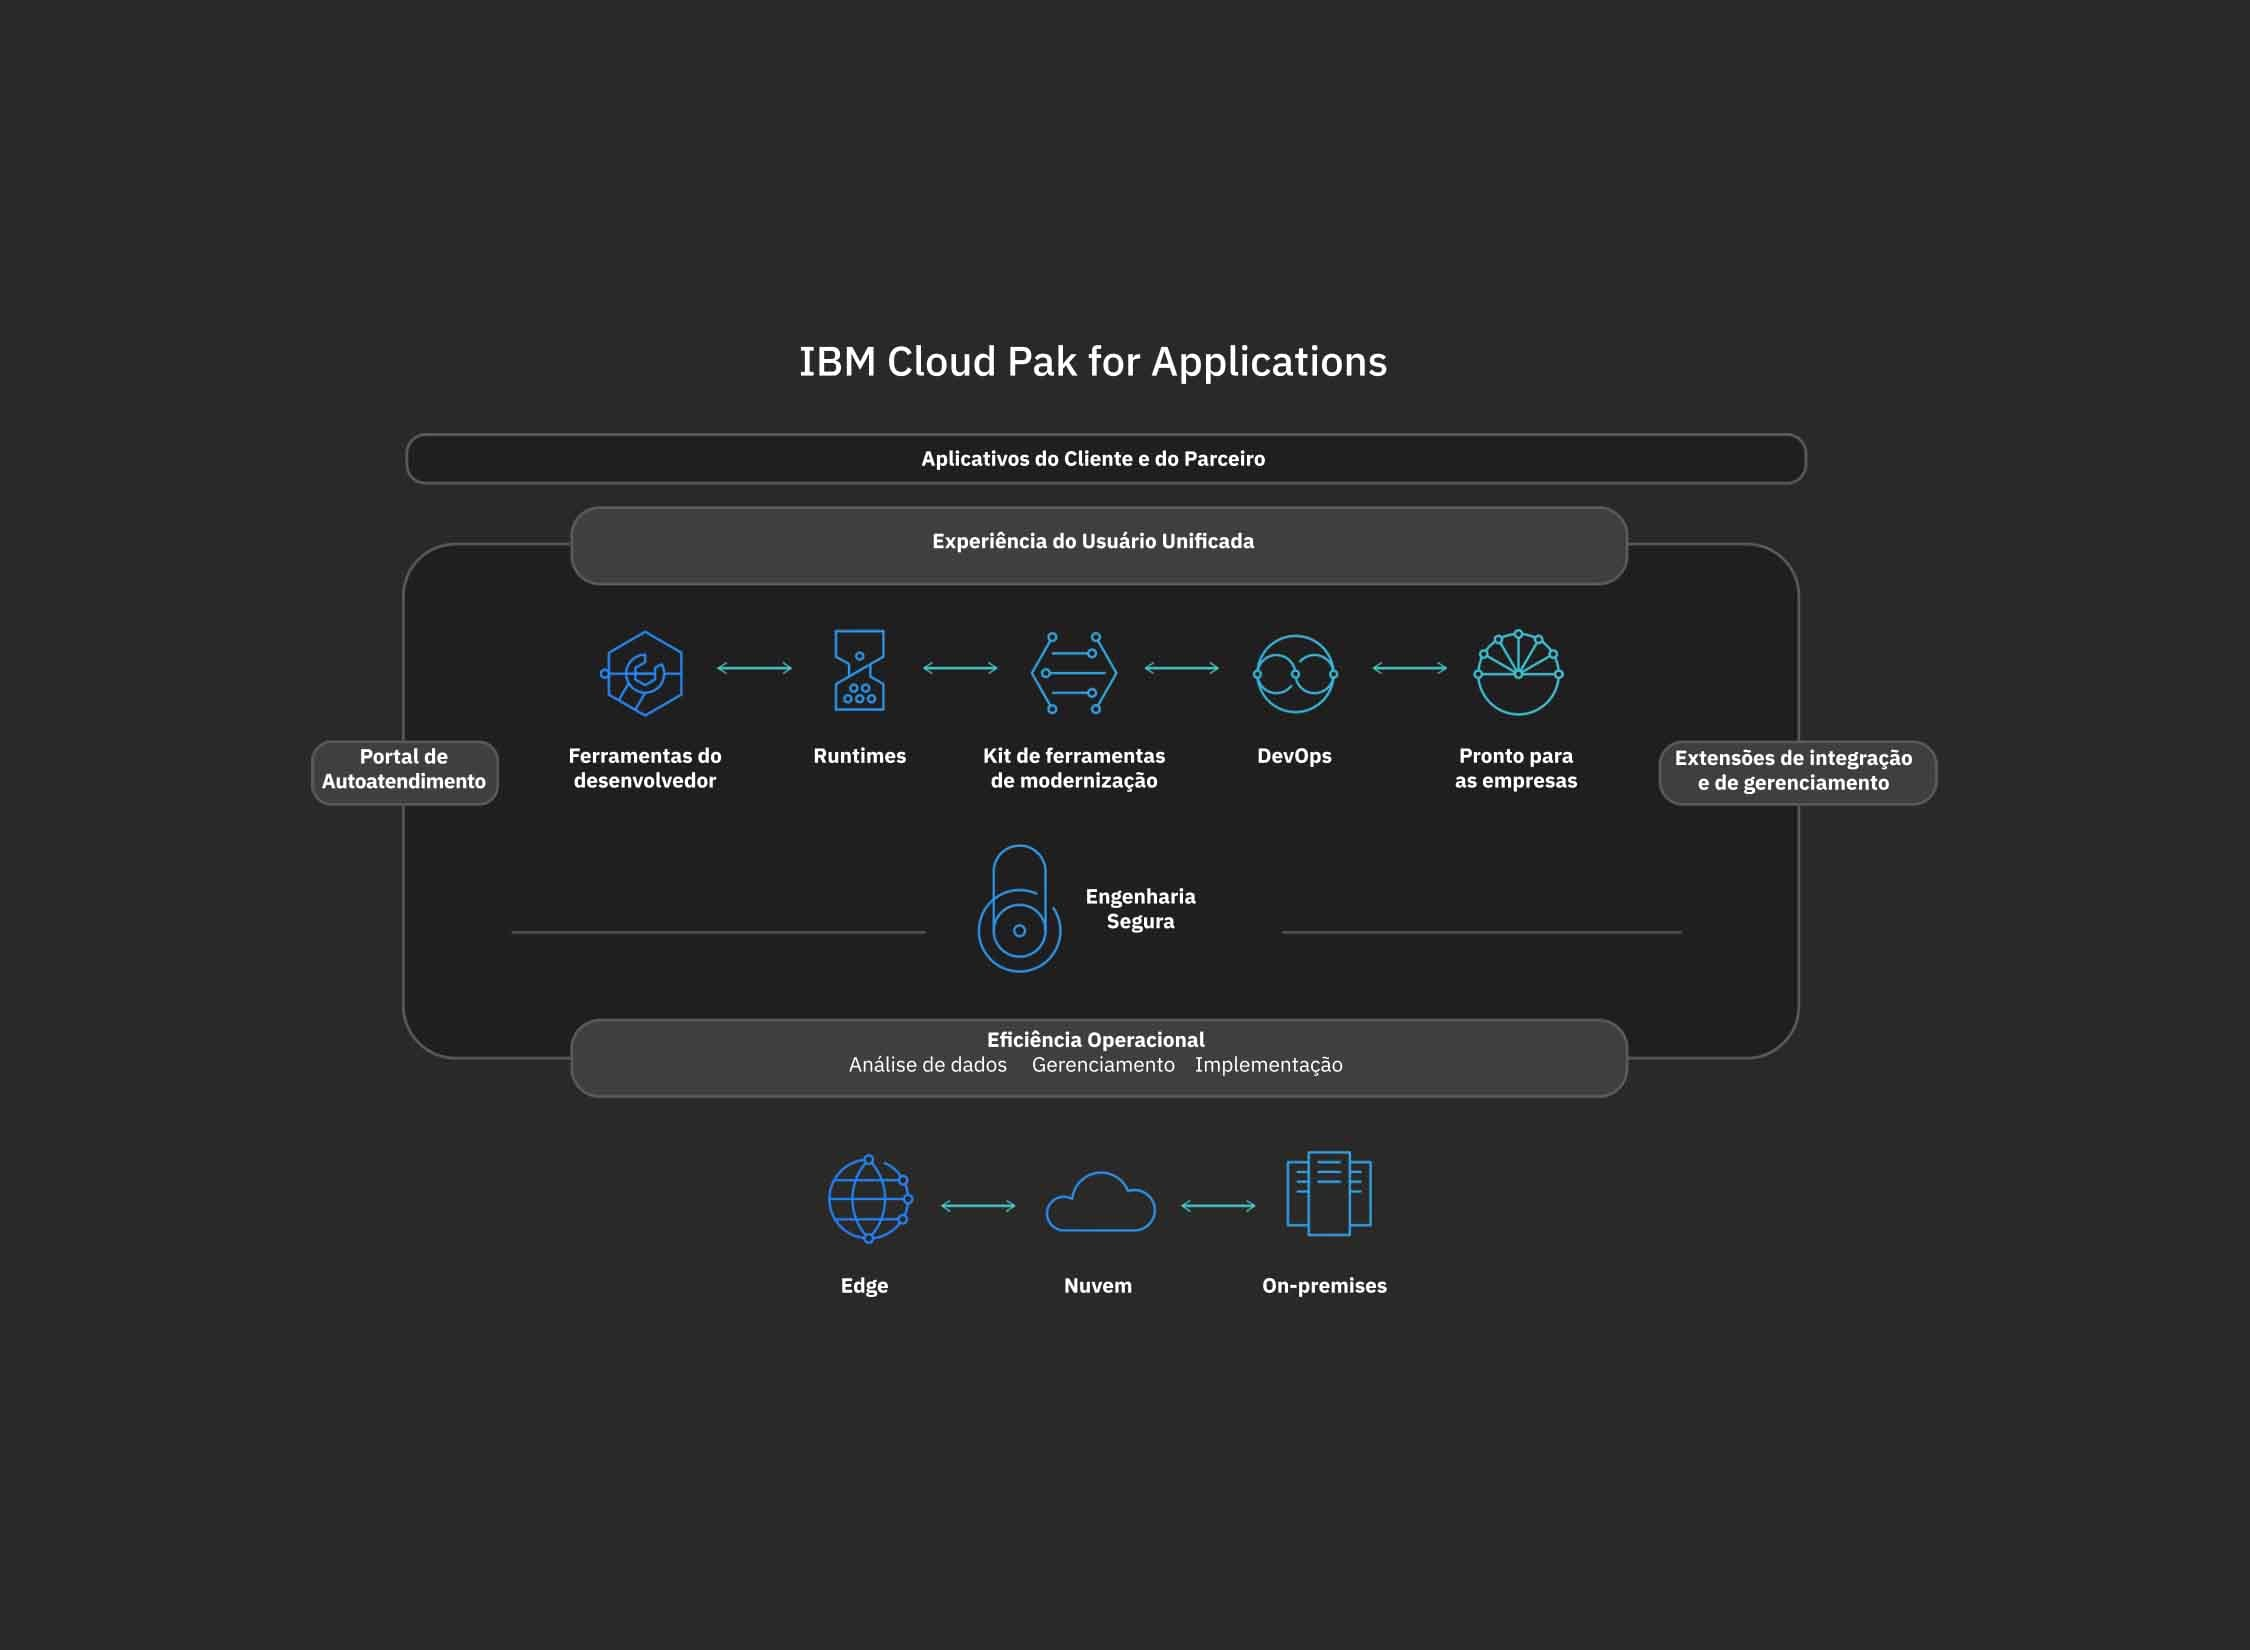 diagrama de como o IBM Cloud Pak for Application trabalha com dados